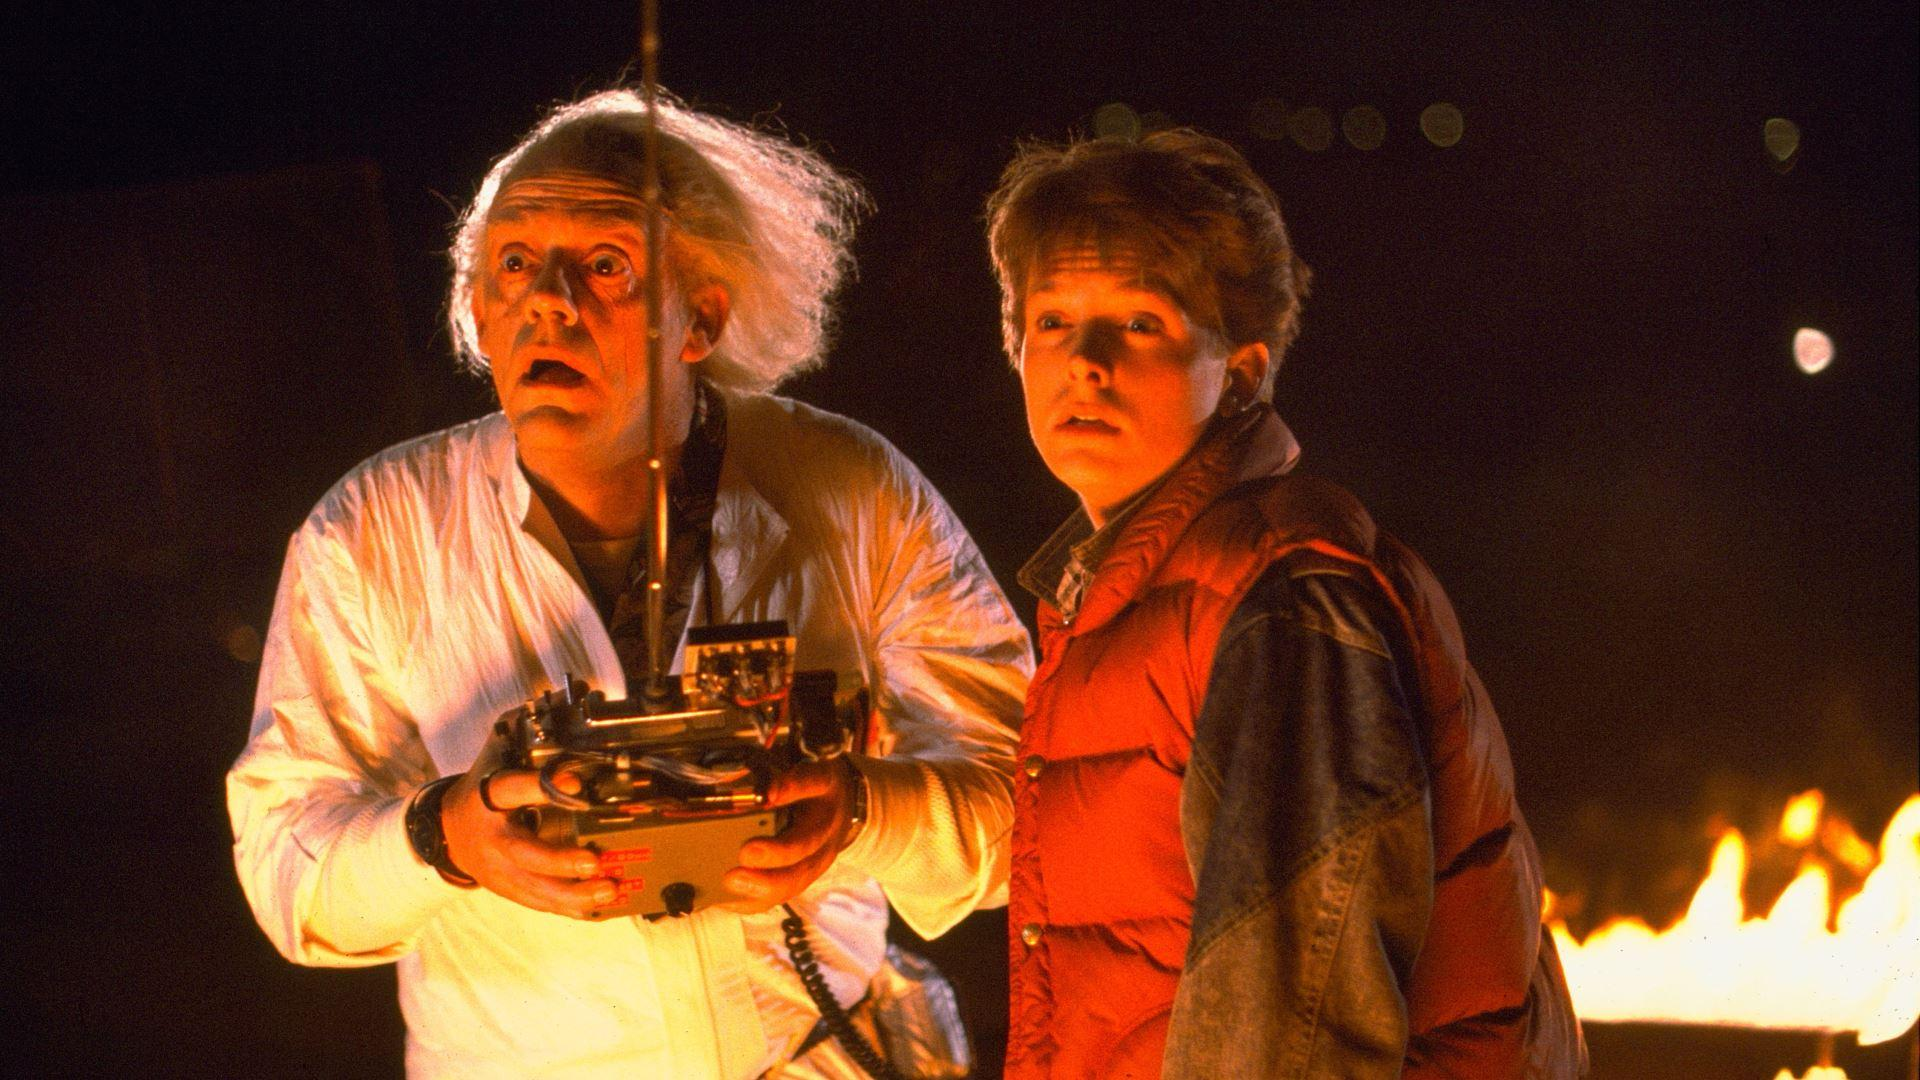 doc-brown-was-suicidal-in-back-to-the-future